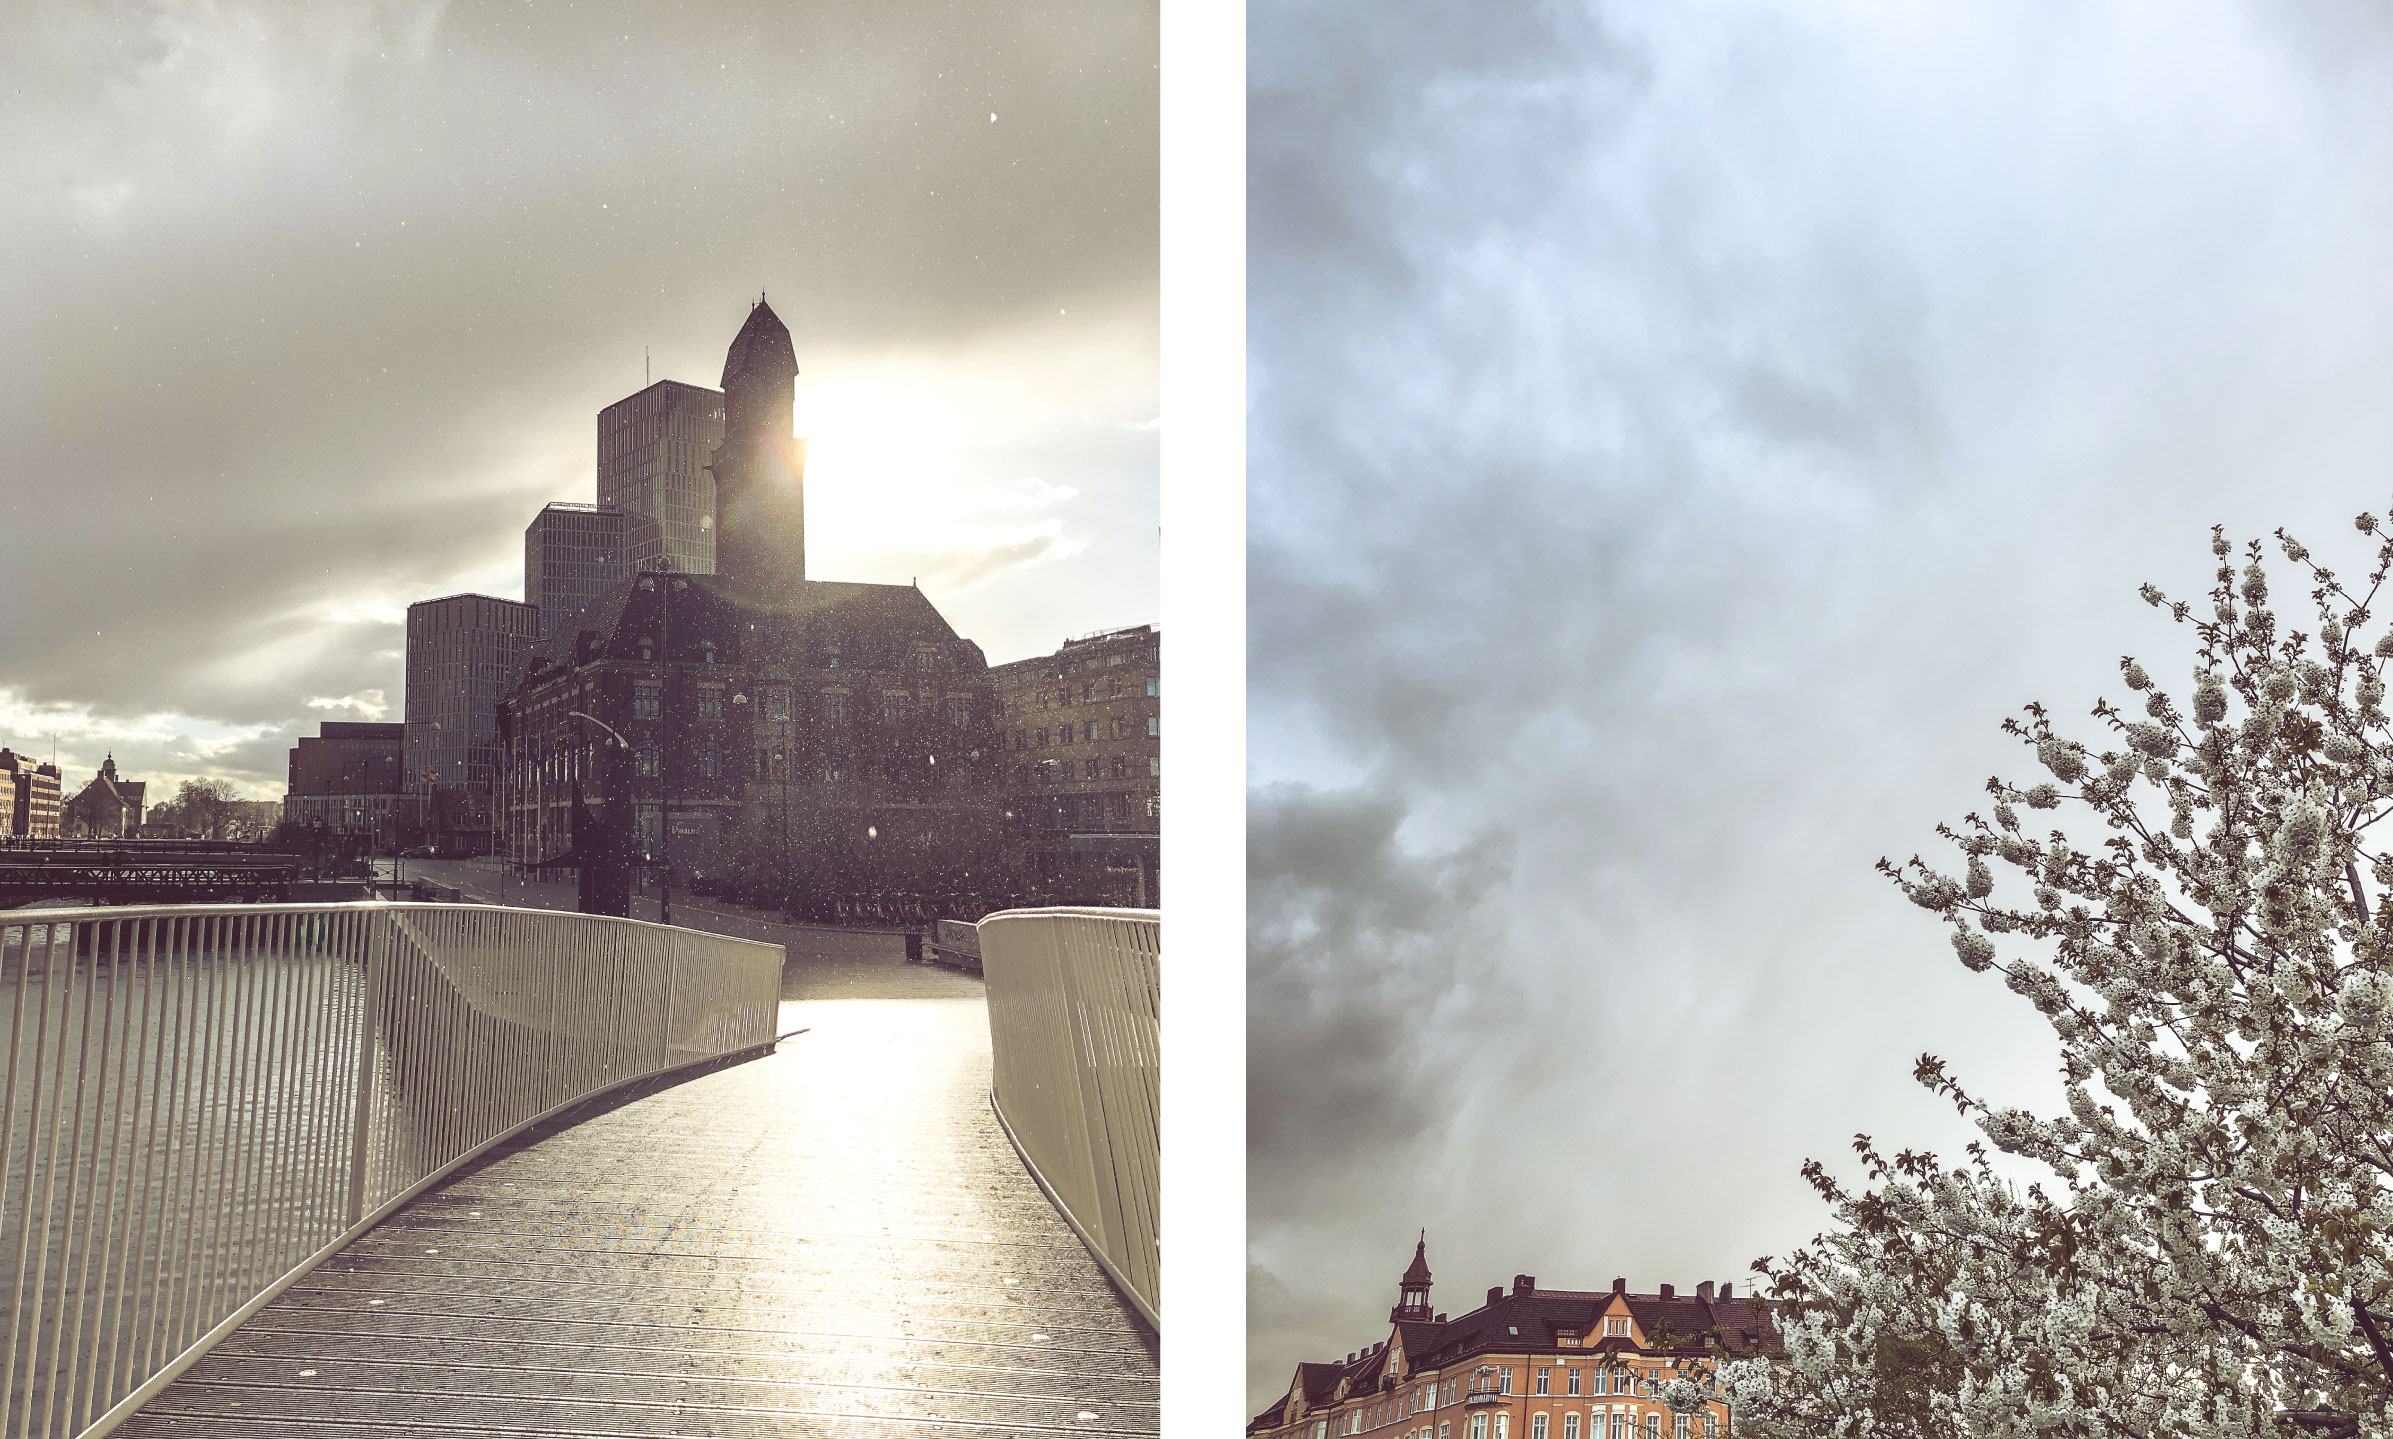 When editing   : Enhance the warmth in the afternoon lights or the cold in dramatic clouds. This is aslo a great time for contrasts, so pull them up a bit for more drama.